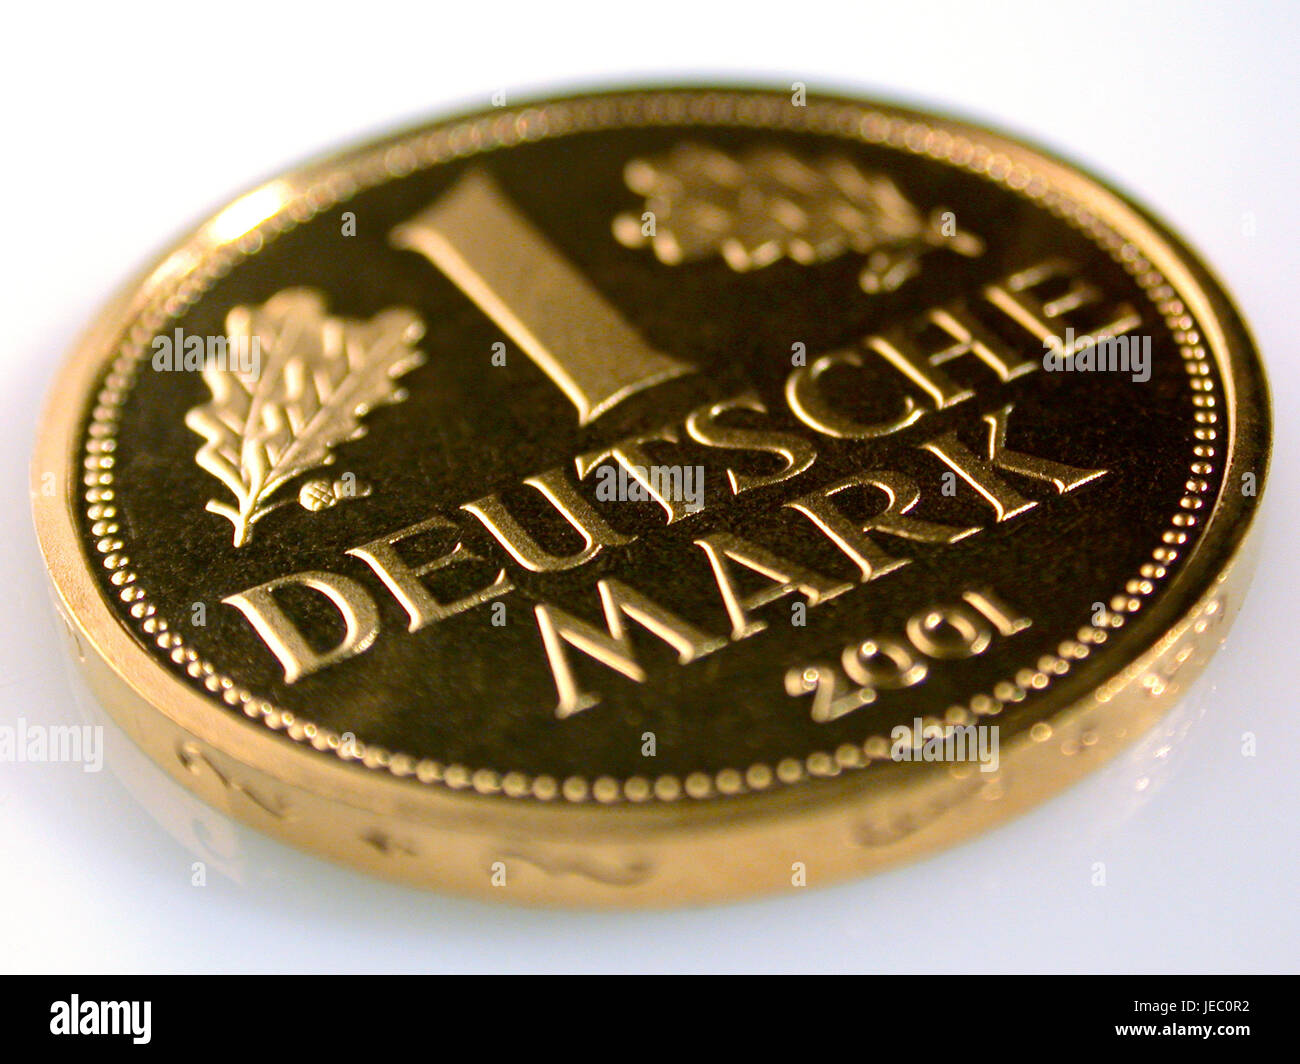 1 DM of coin in gold, - Stock Image